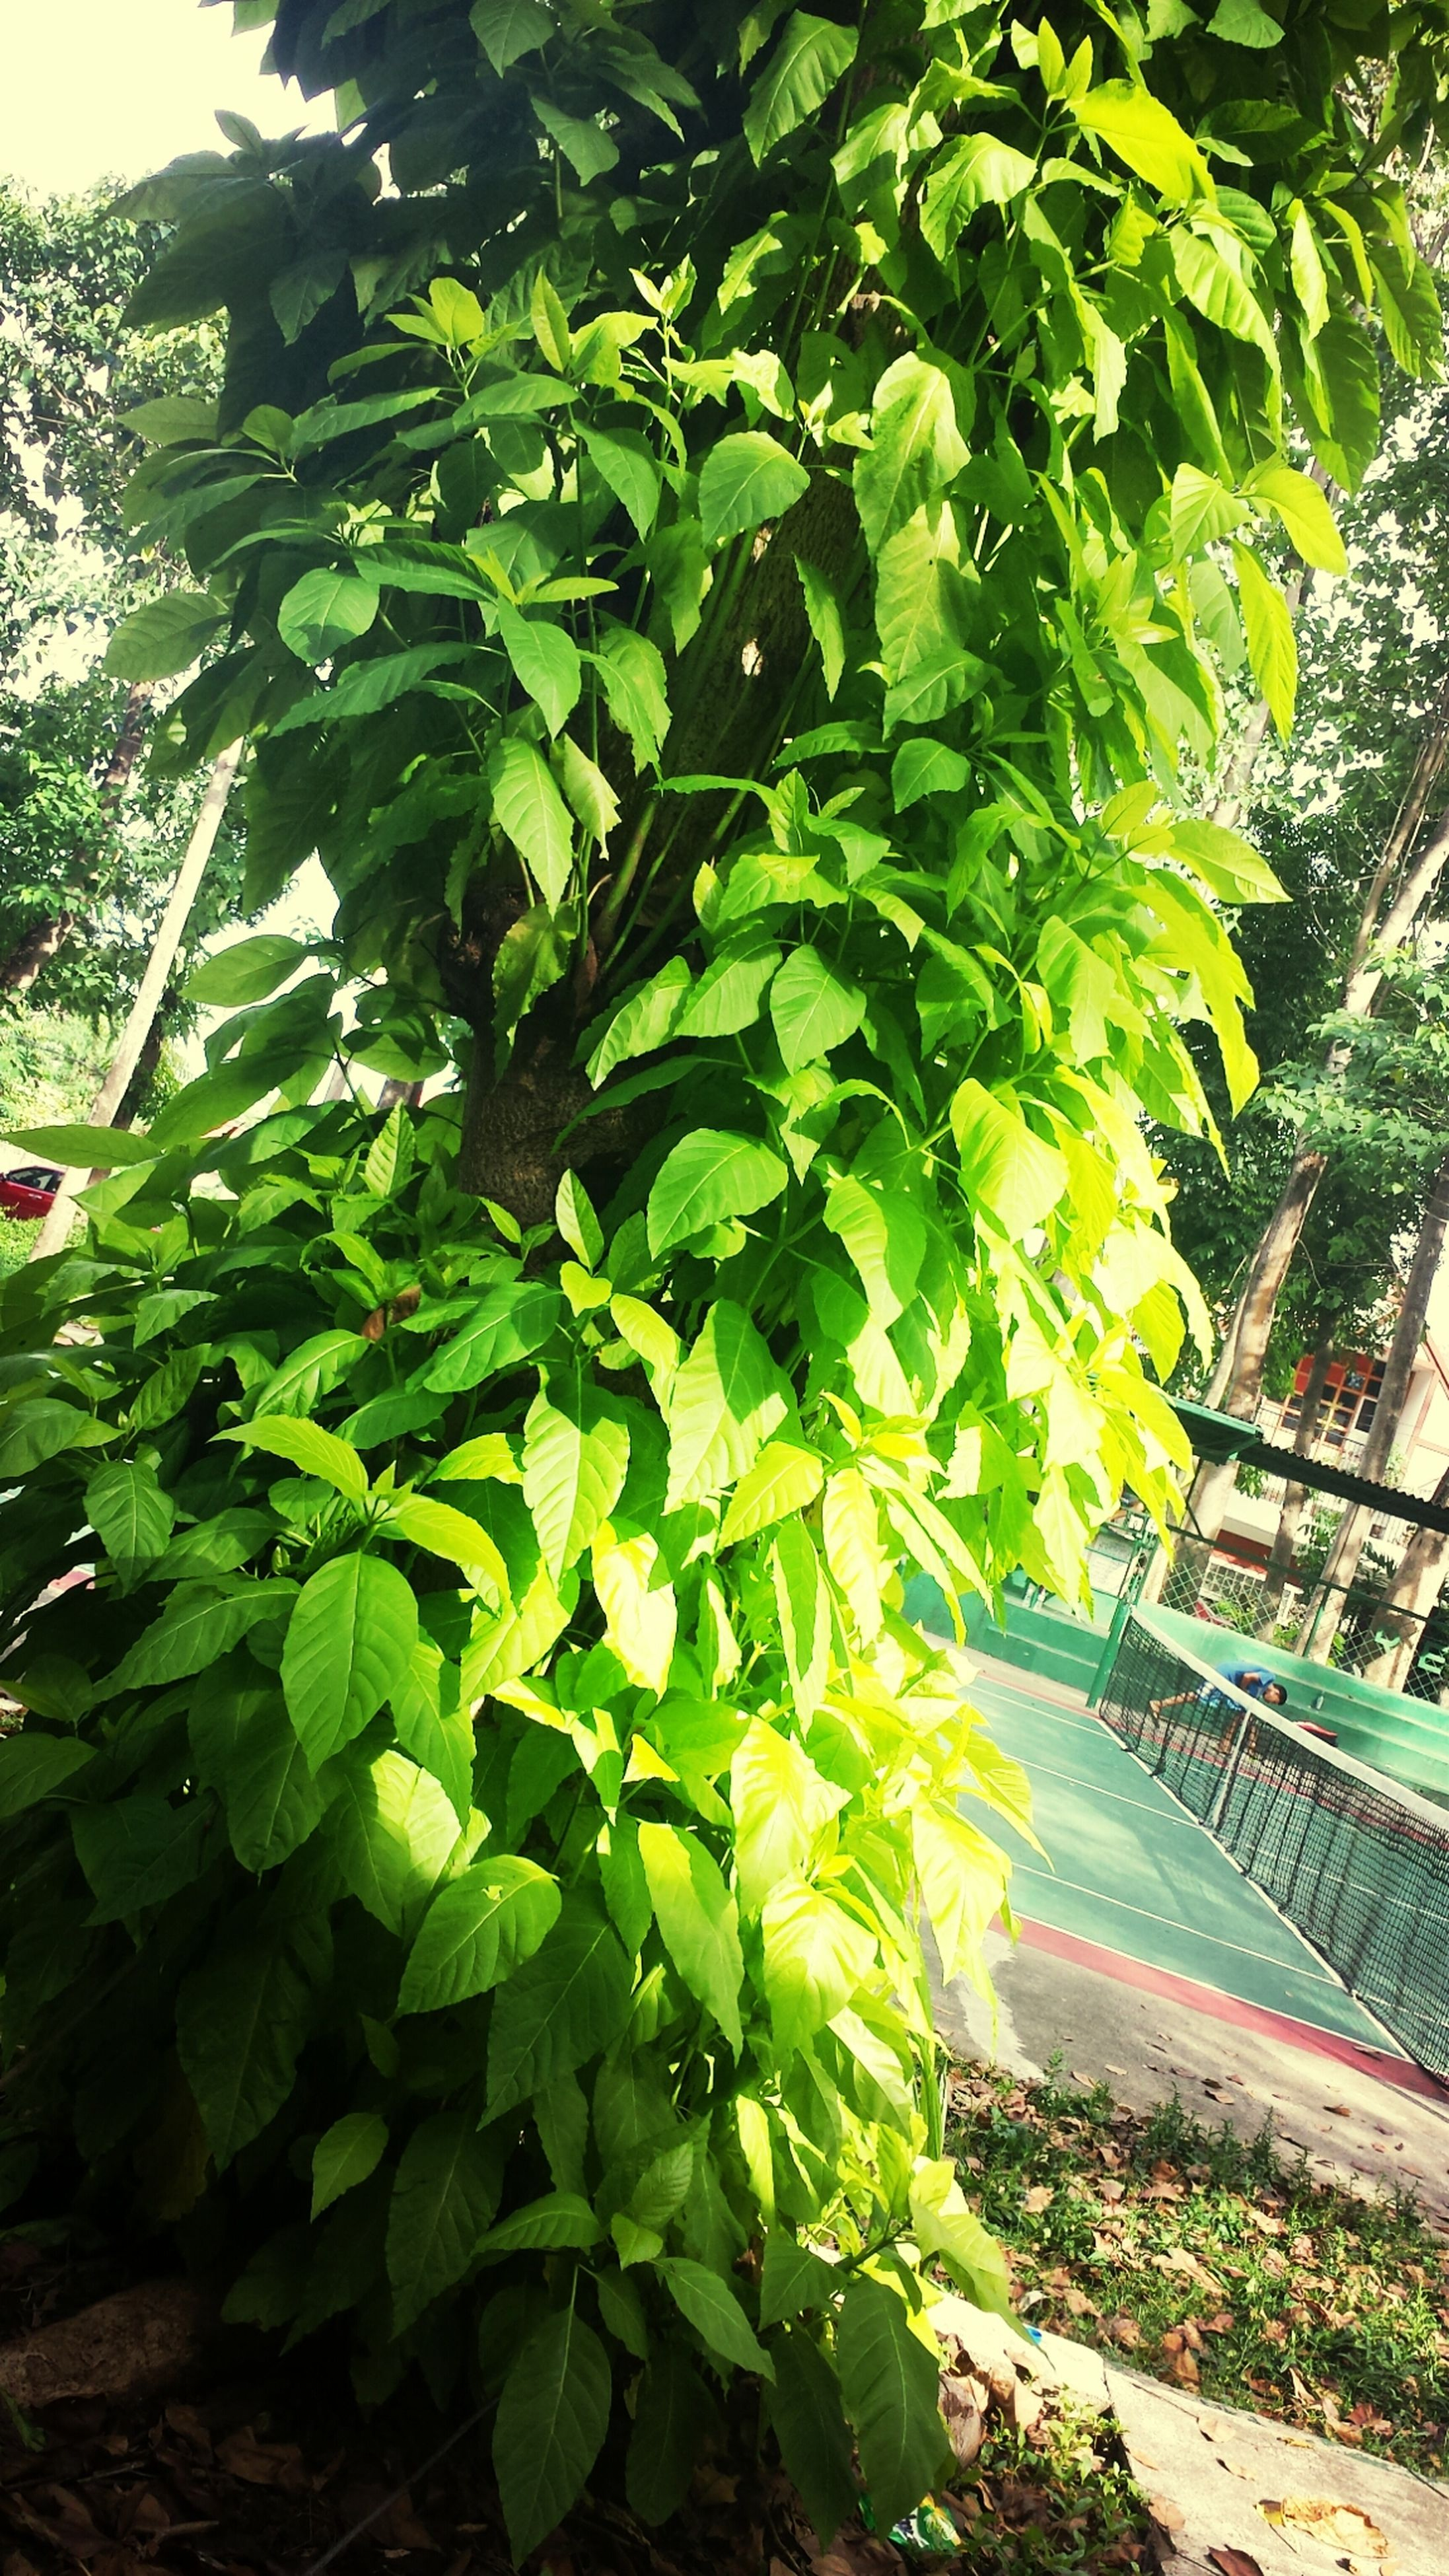 tree, growth, green color, leaf, plant, branch, low angle view, nature, lush foliage, sunlight, outdoors, day, green, no people, built structure, beauty in nature, railing, architecture, growing, tranquility